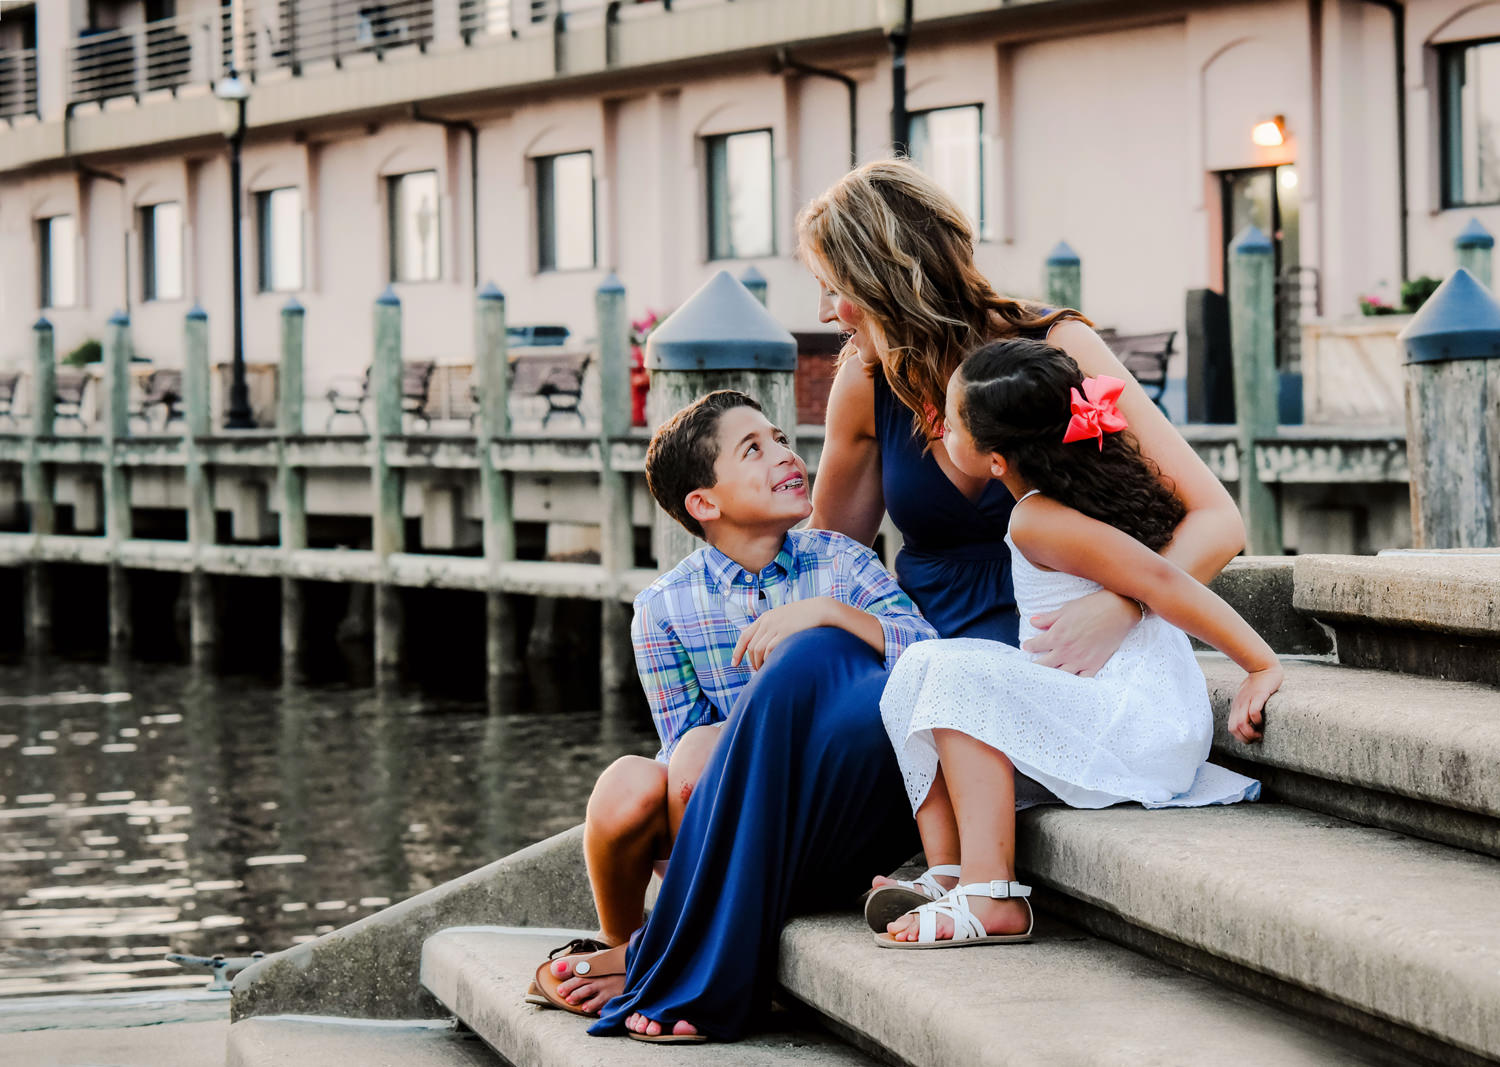 hampton-roads-photographer-family-mini-session-downtown-norfolk-va-melissa-bliss-photography.jpg